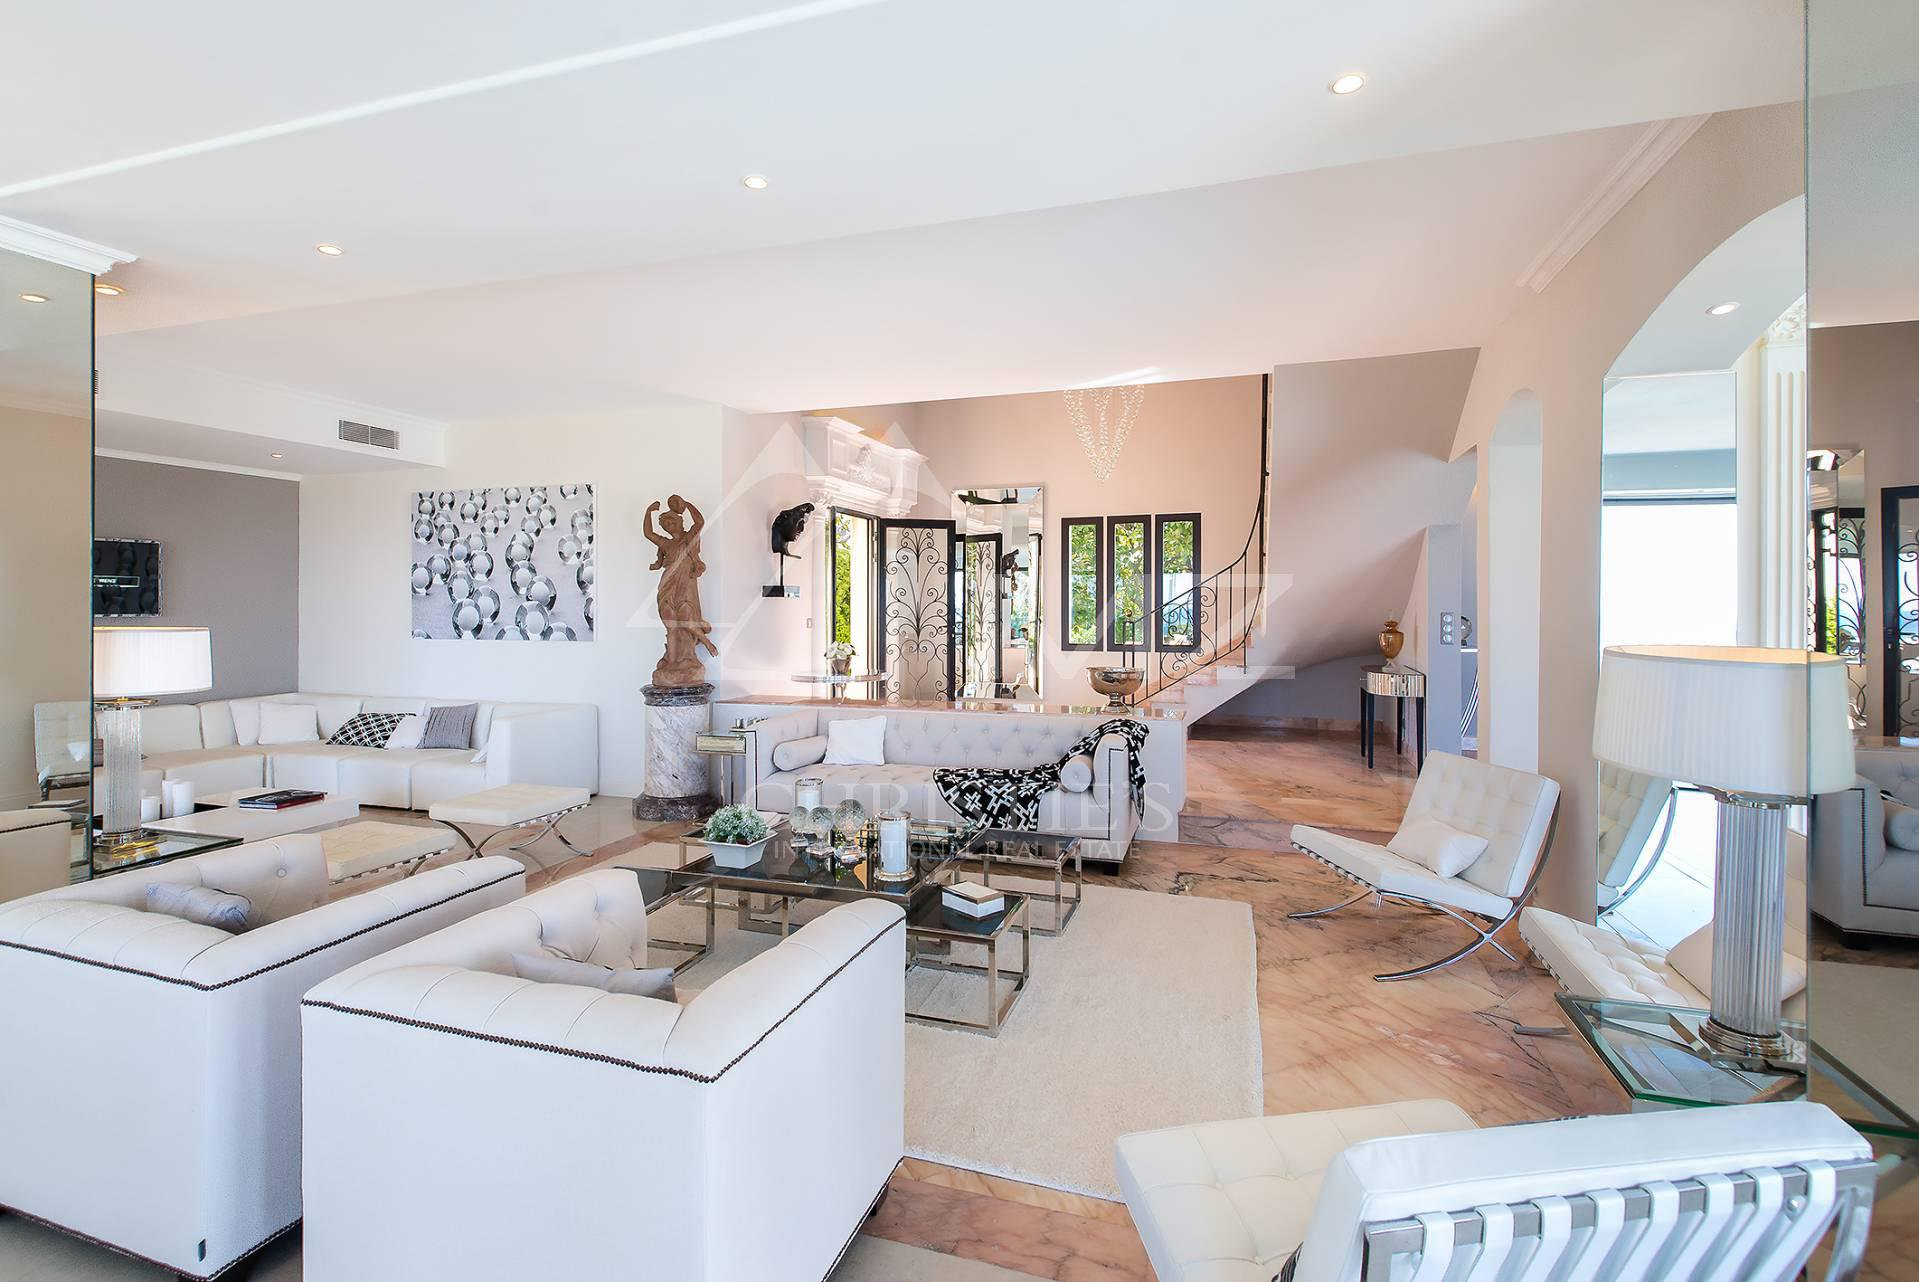 Additional photo for property listing at Super Cannes - Astonishing sea view  Vallauris, Alpes-Maritimes,06220 France